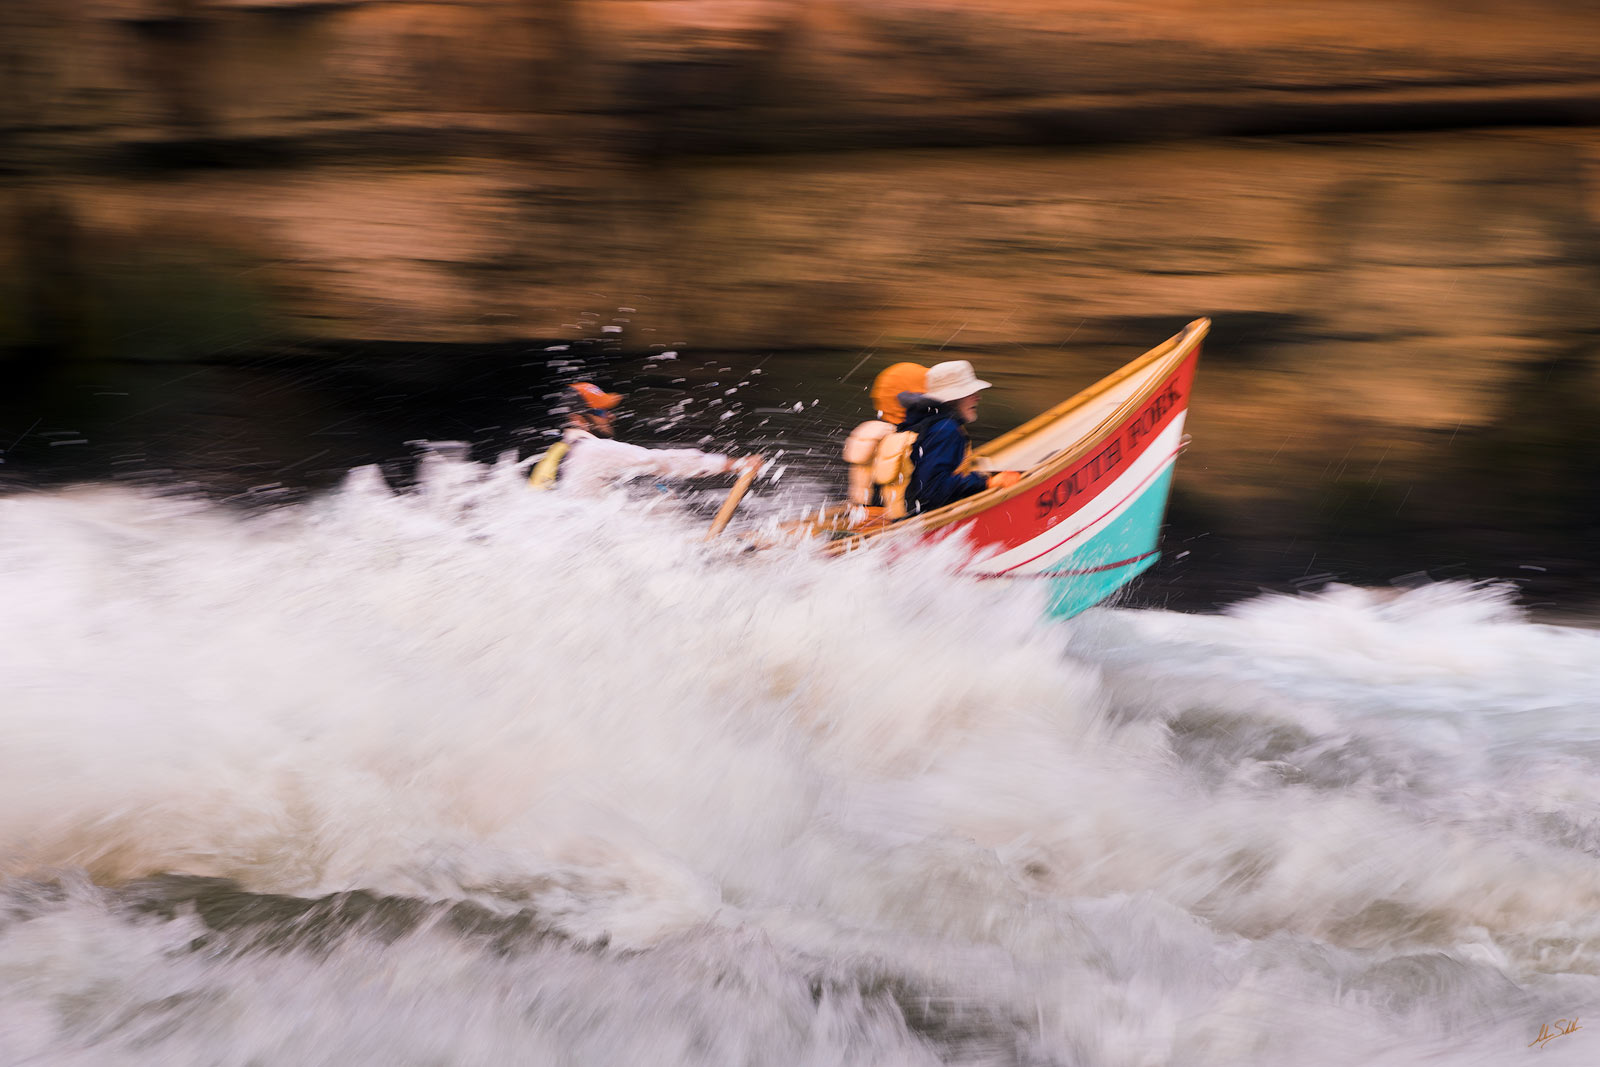 Grand Canyon Rafting Expedition | Adam Schallau, American